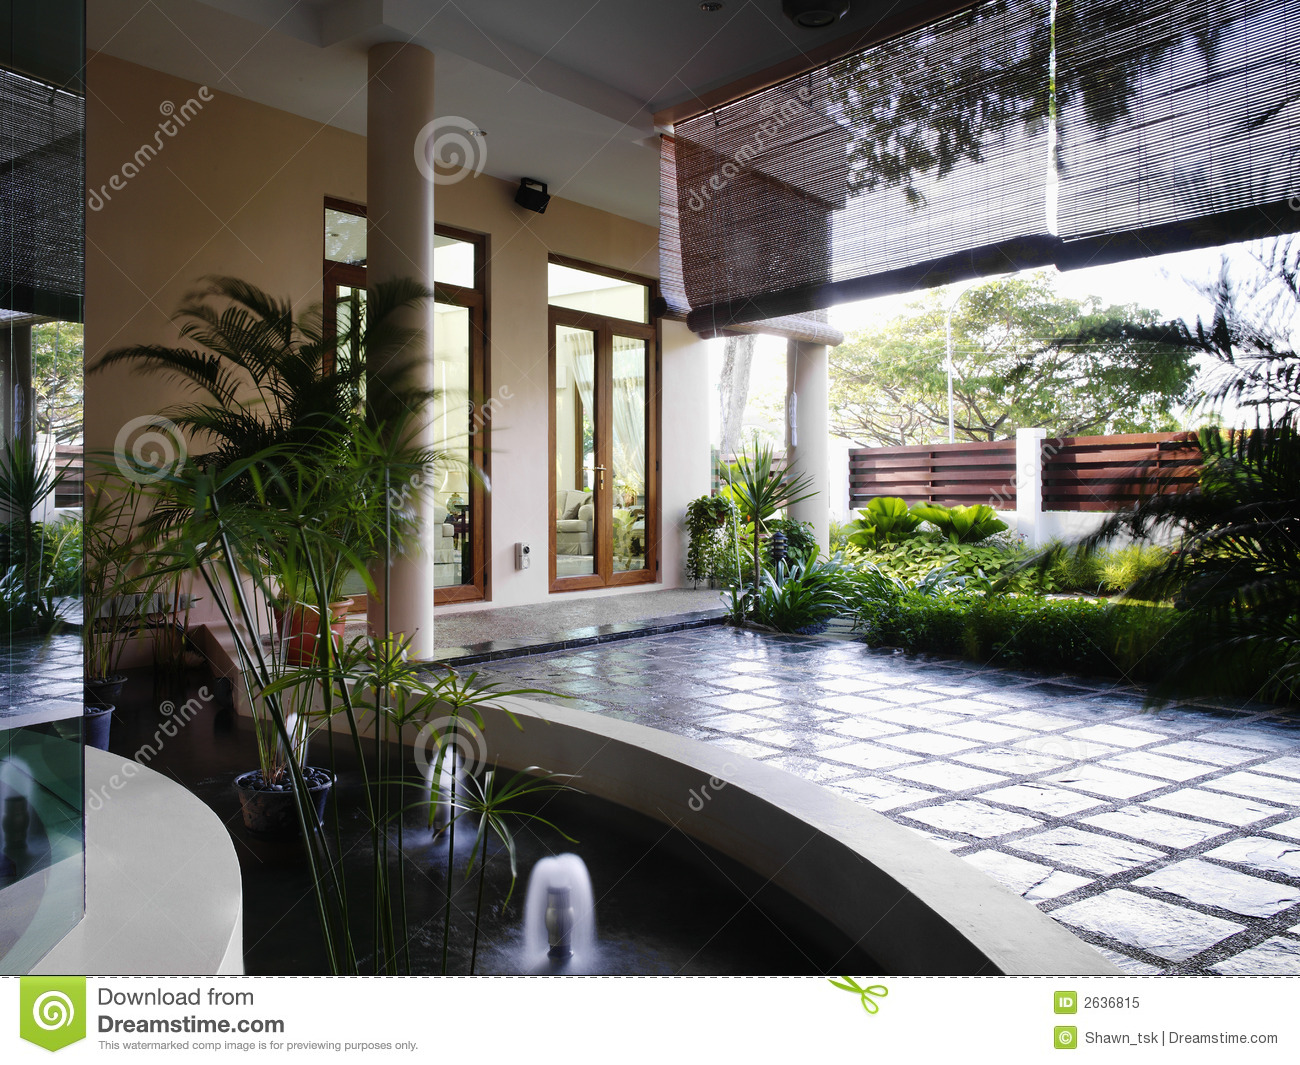 Interior design landscape royalty free stock photo for Interior landscape design